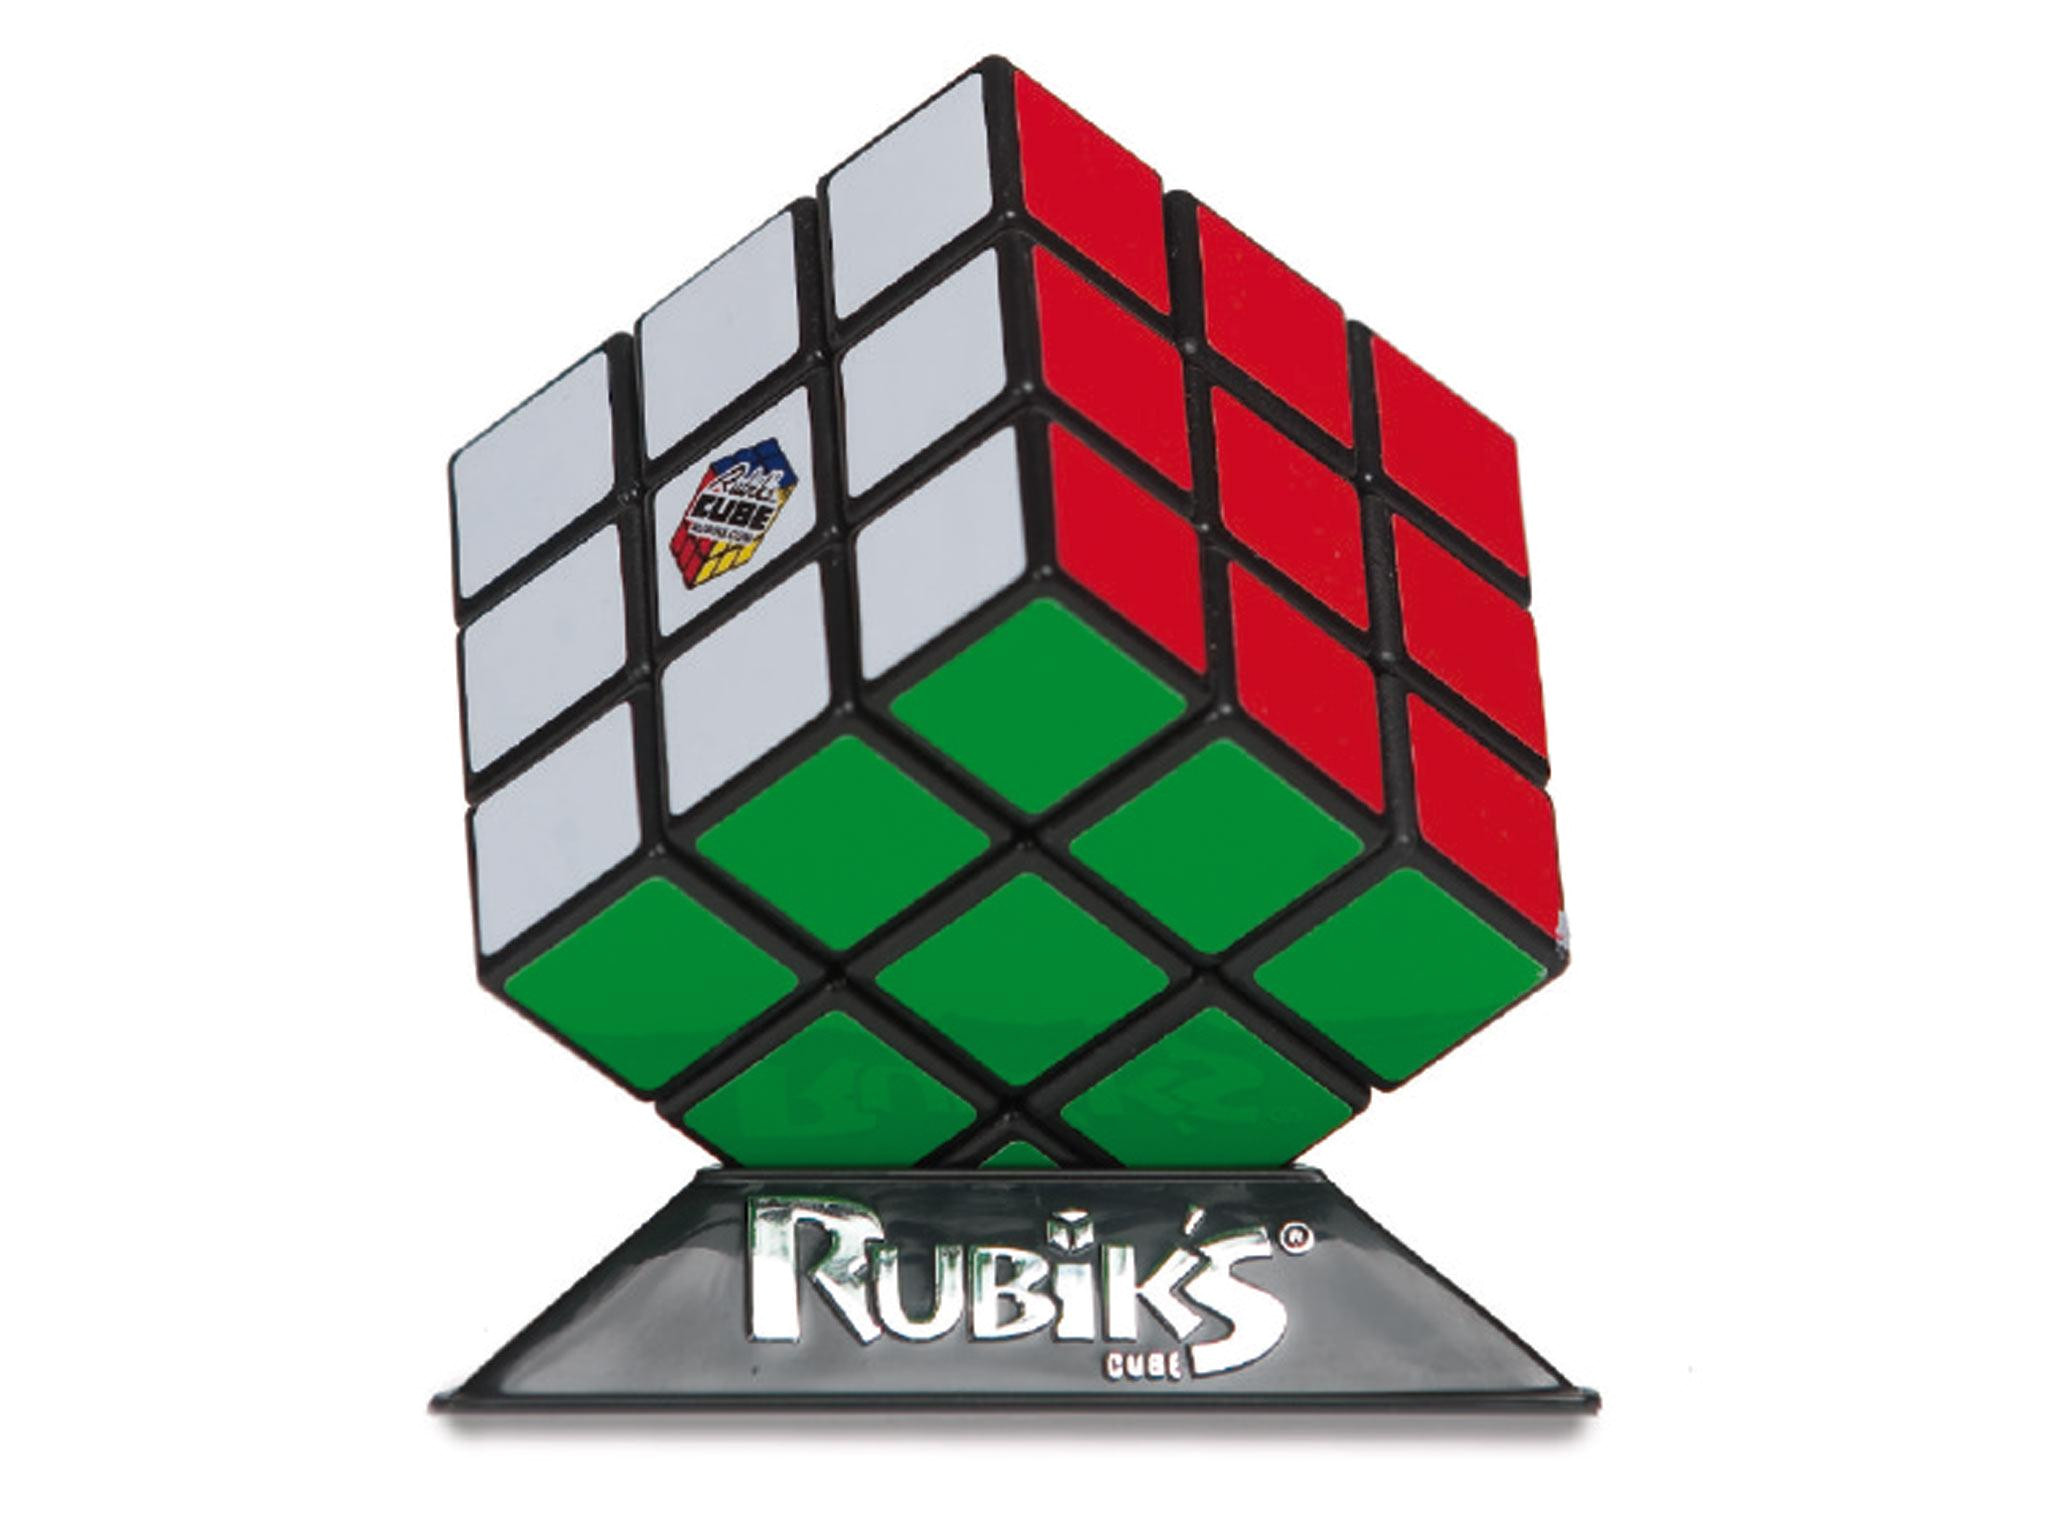 rubik s cube is the world s bestselling puzzle but for those not familiar with it it s a cube with each side made up of nine coloured squares